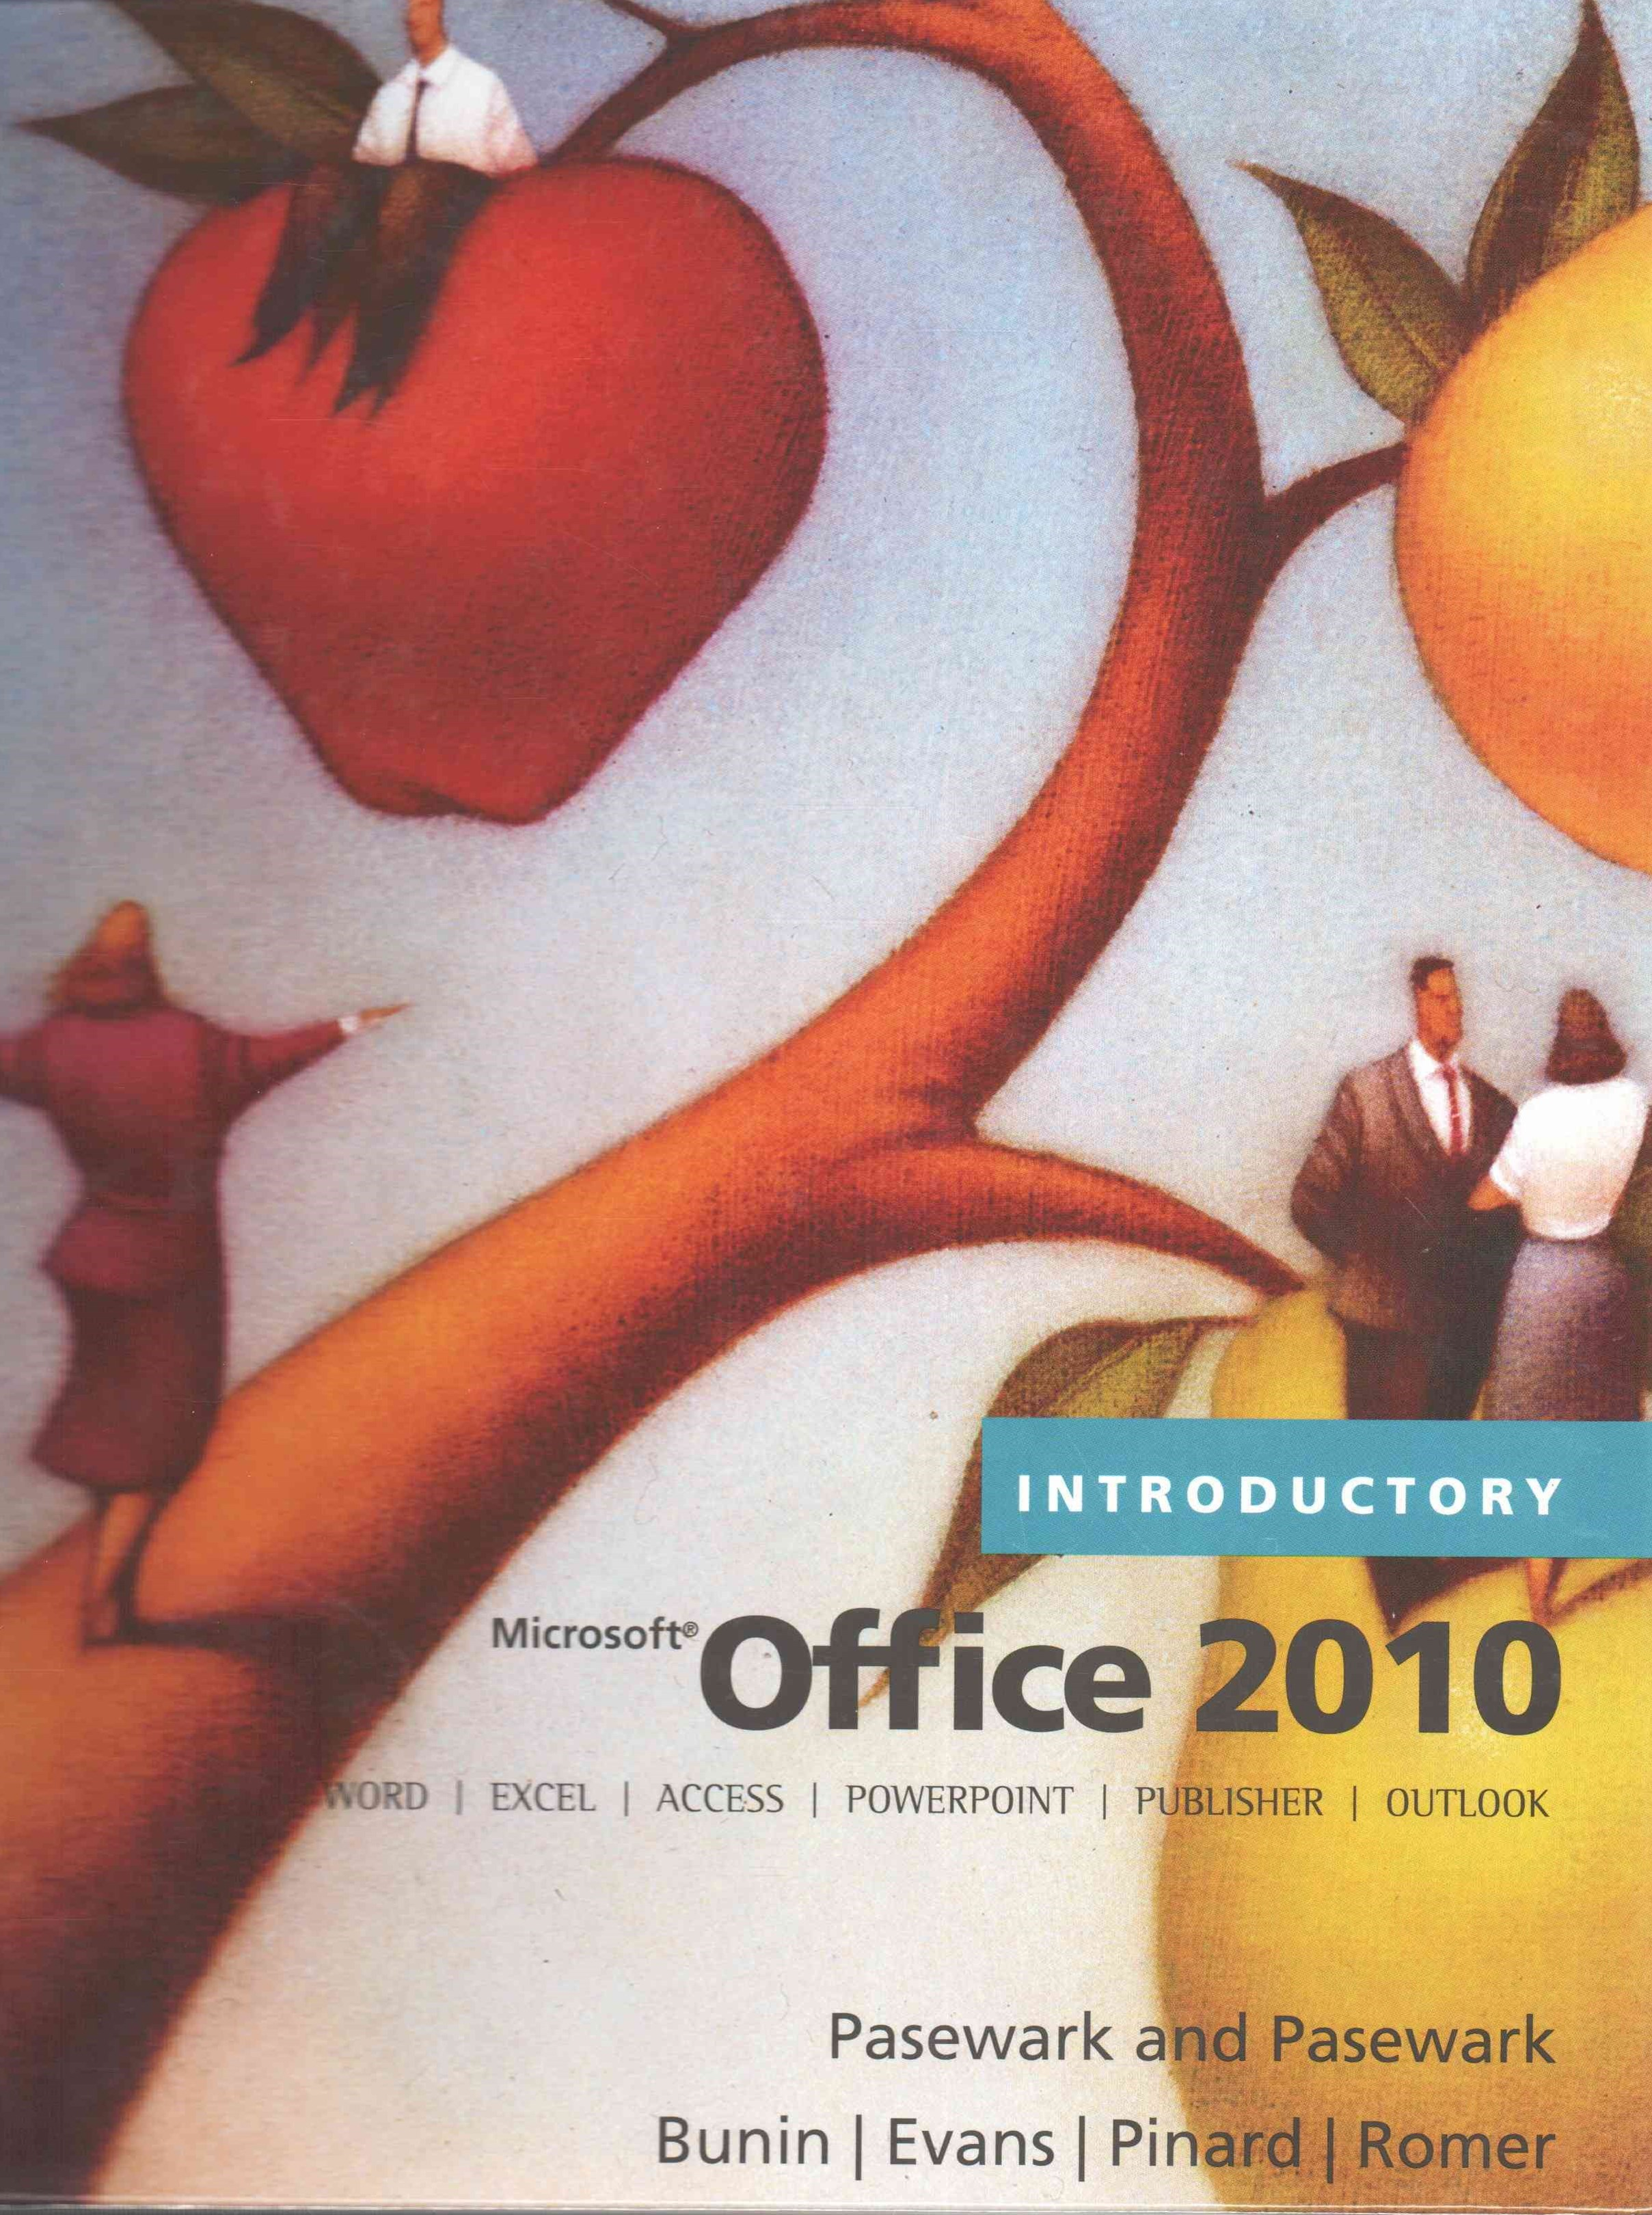 Microsoft© Office 2010, Introductory